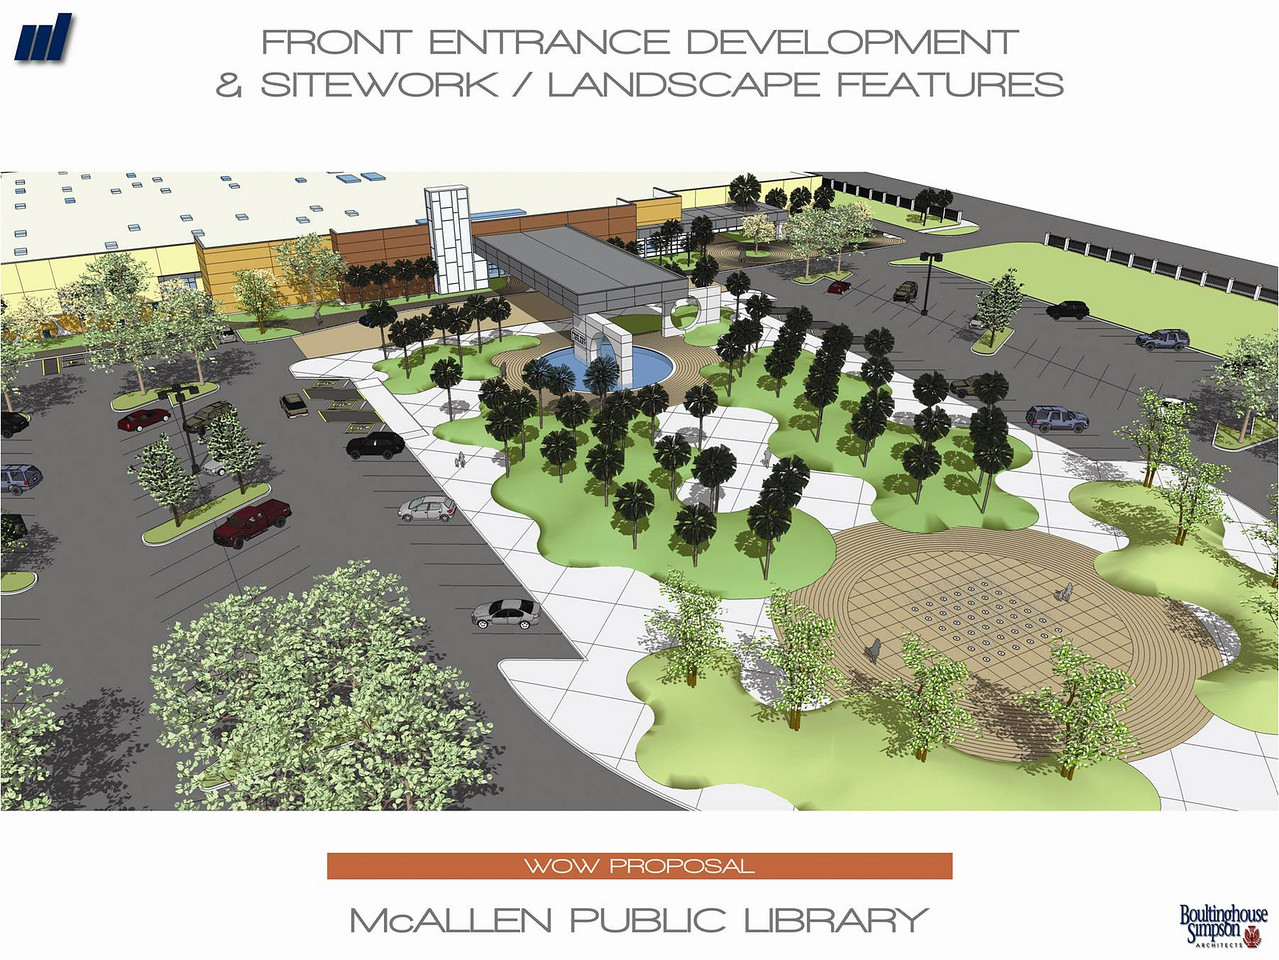 An overhead view of the front entrance and landscape features of the new Main Library.